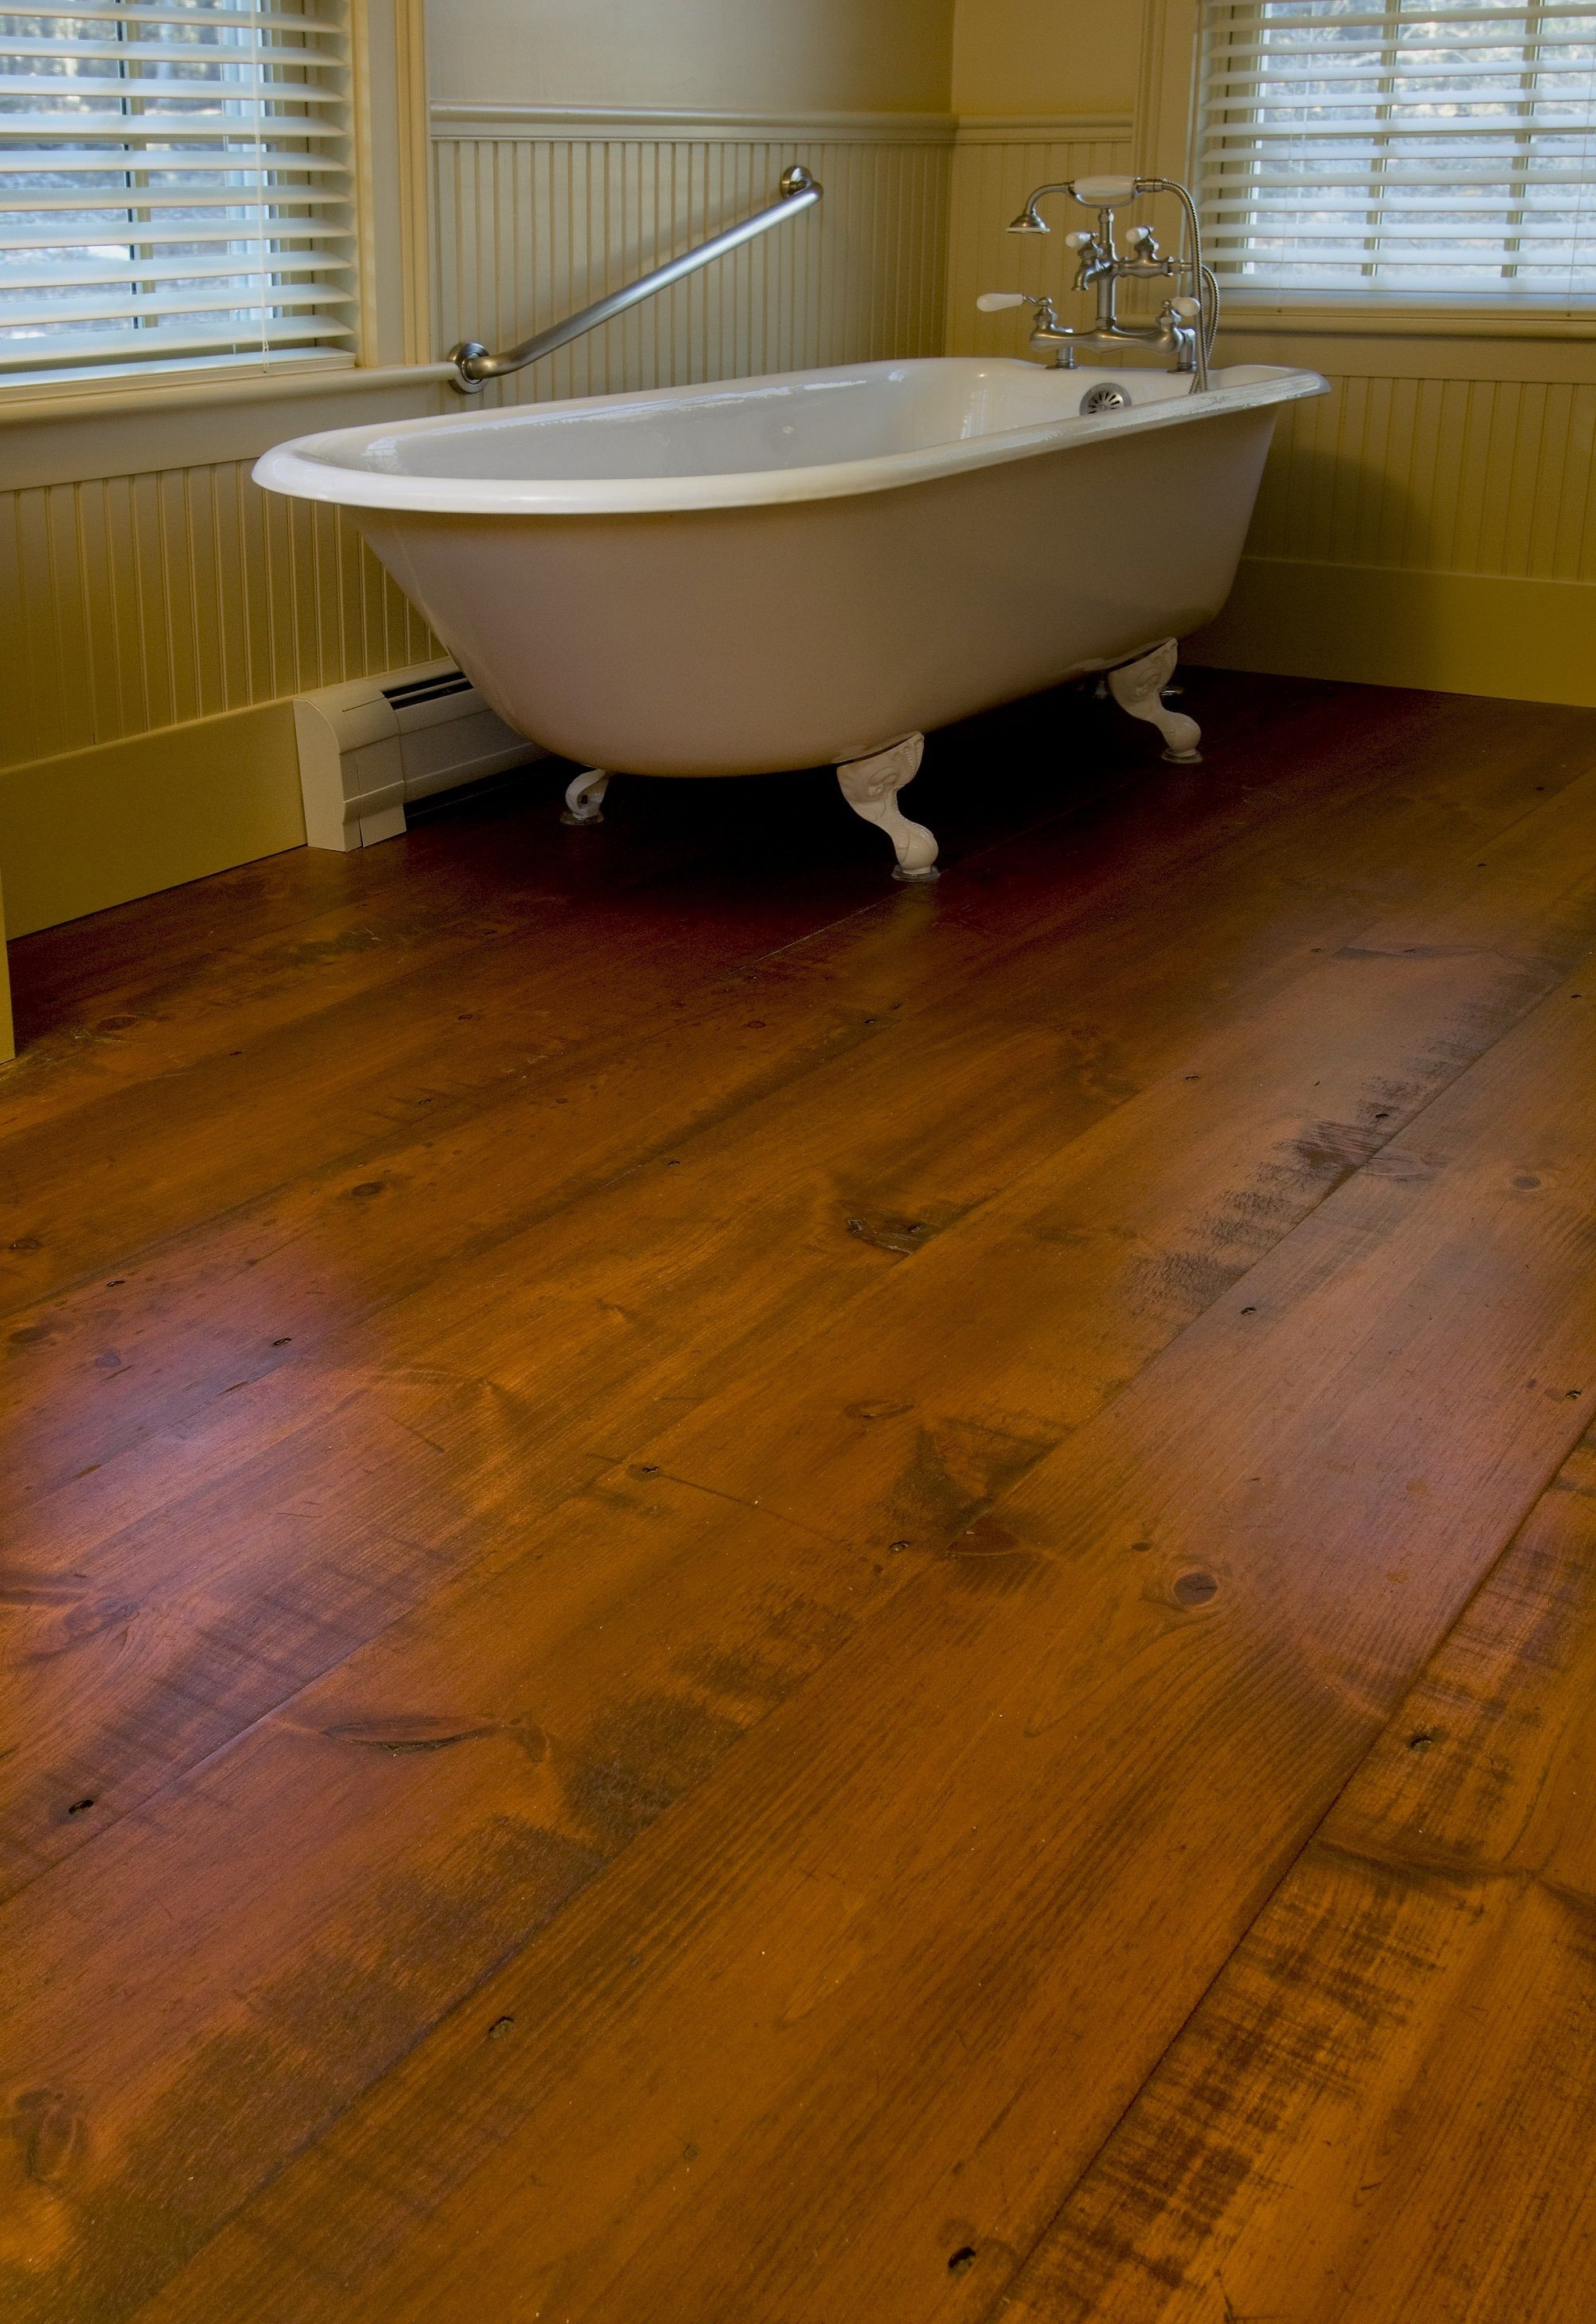 Hardwood Floor Refinishing New Haven Ct Of Carlisle Wide Plank Floors Eastern Hit or Miss White Pine Flooring In Carlisle Wide Plank Floors Eastern Hit or Miss White Pine Flooring In A Bathroom the